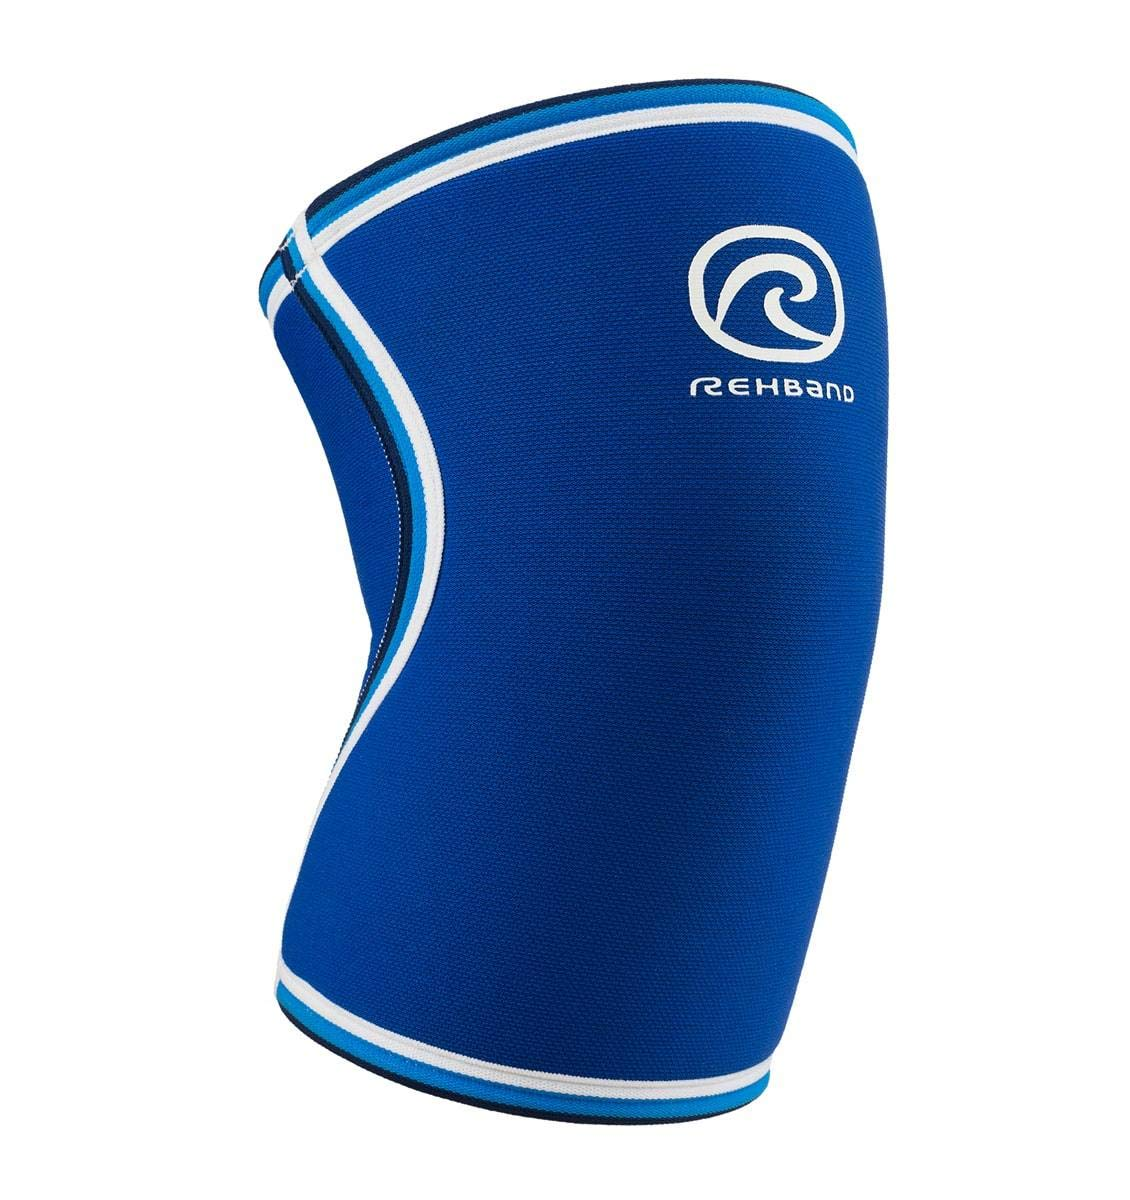 2c3ce3212c Rehband Blue Line Knee Support 7084 7mm - Medium - Expand Movement & Cross  Training Potential